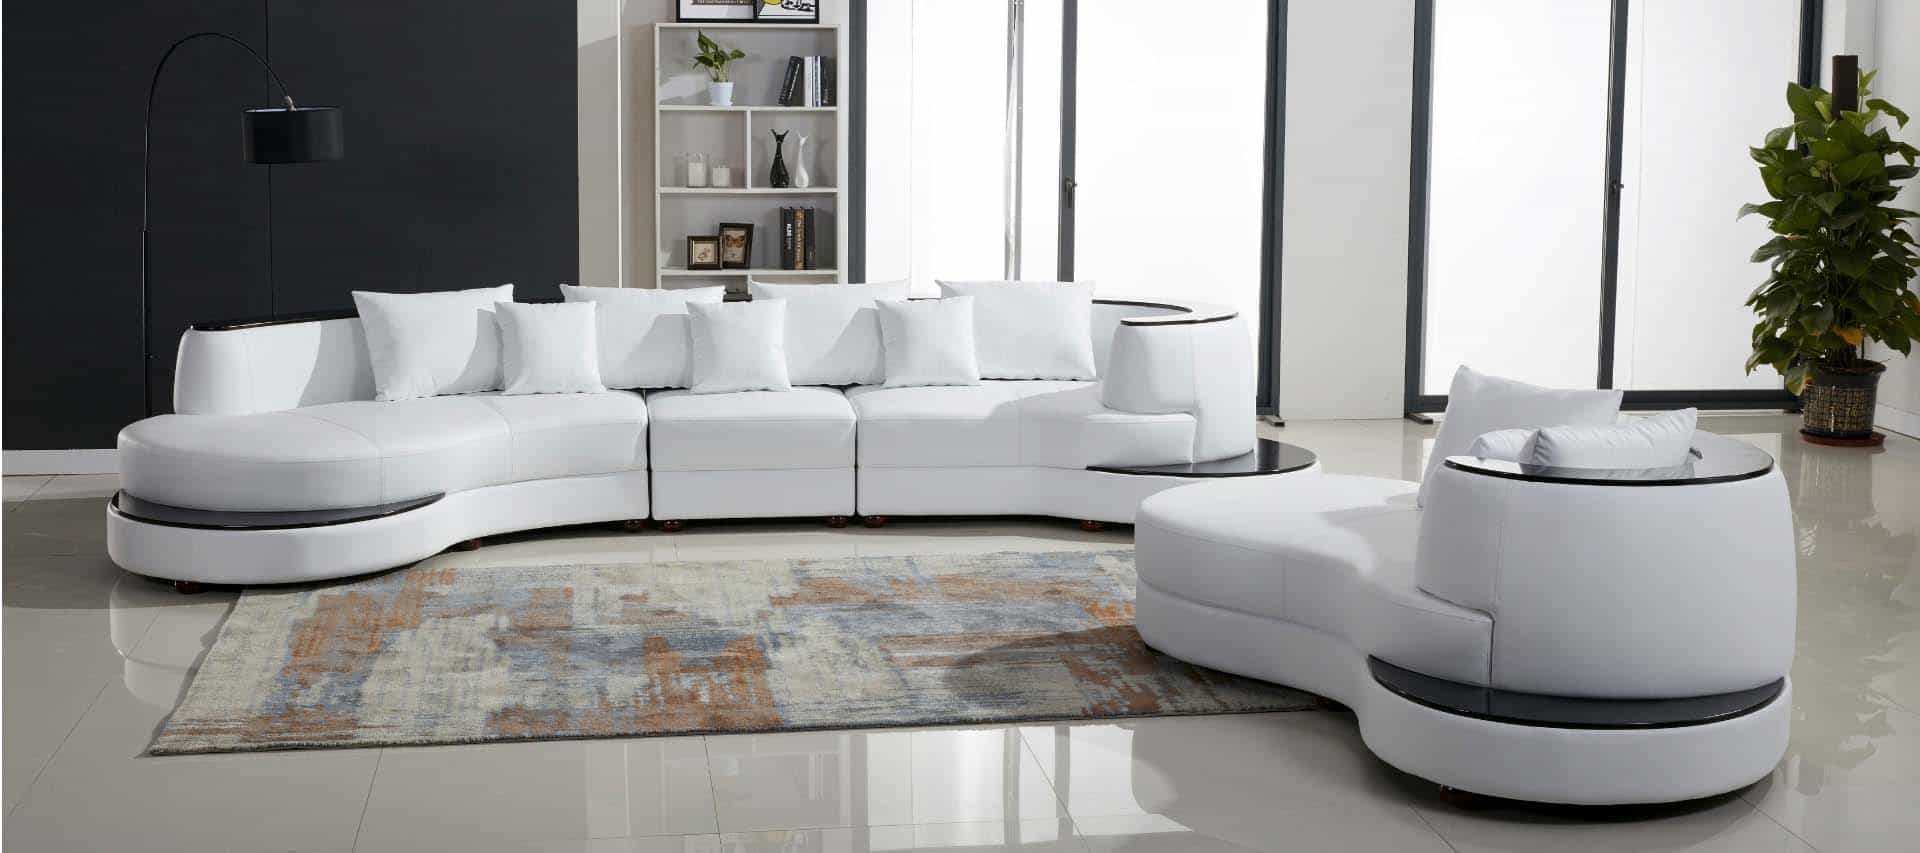 Lounge Sofa Sydney Customisable Leather Lounges Desired Living Sydney